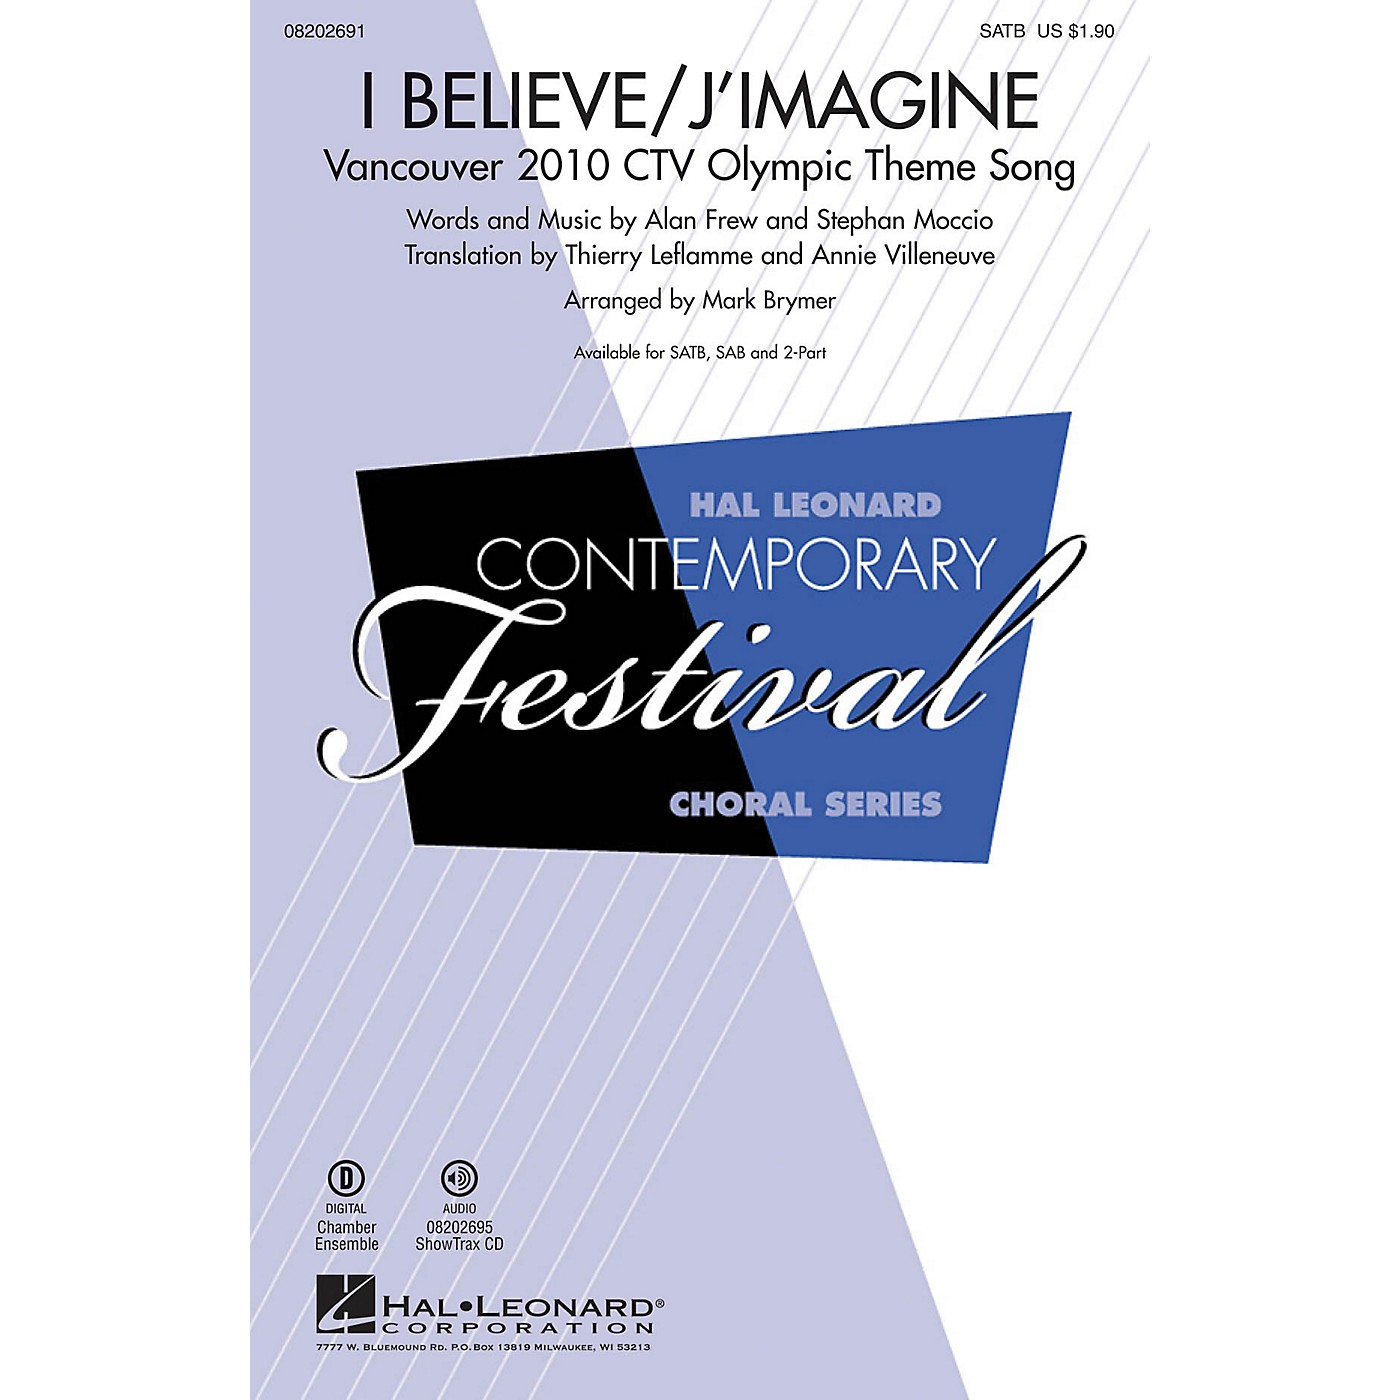 Hal Leonard I Believe/J'Imagine (Vancouver 2010 CTV Olympic Theme Song) 2-Part Arranged by Mark Brymer thumbnail